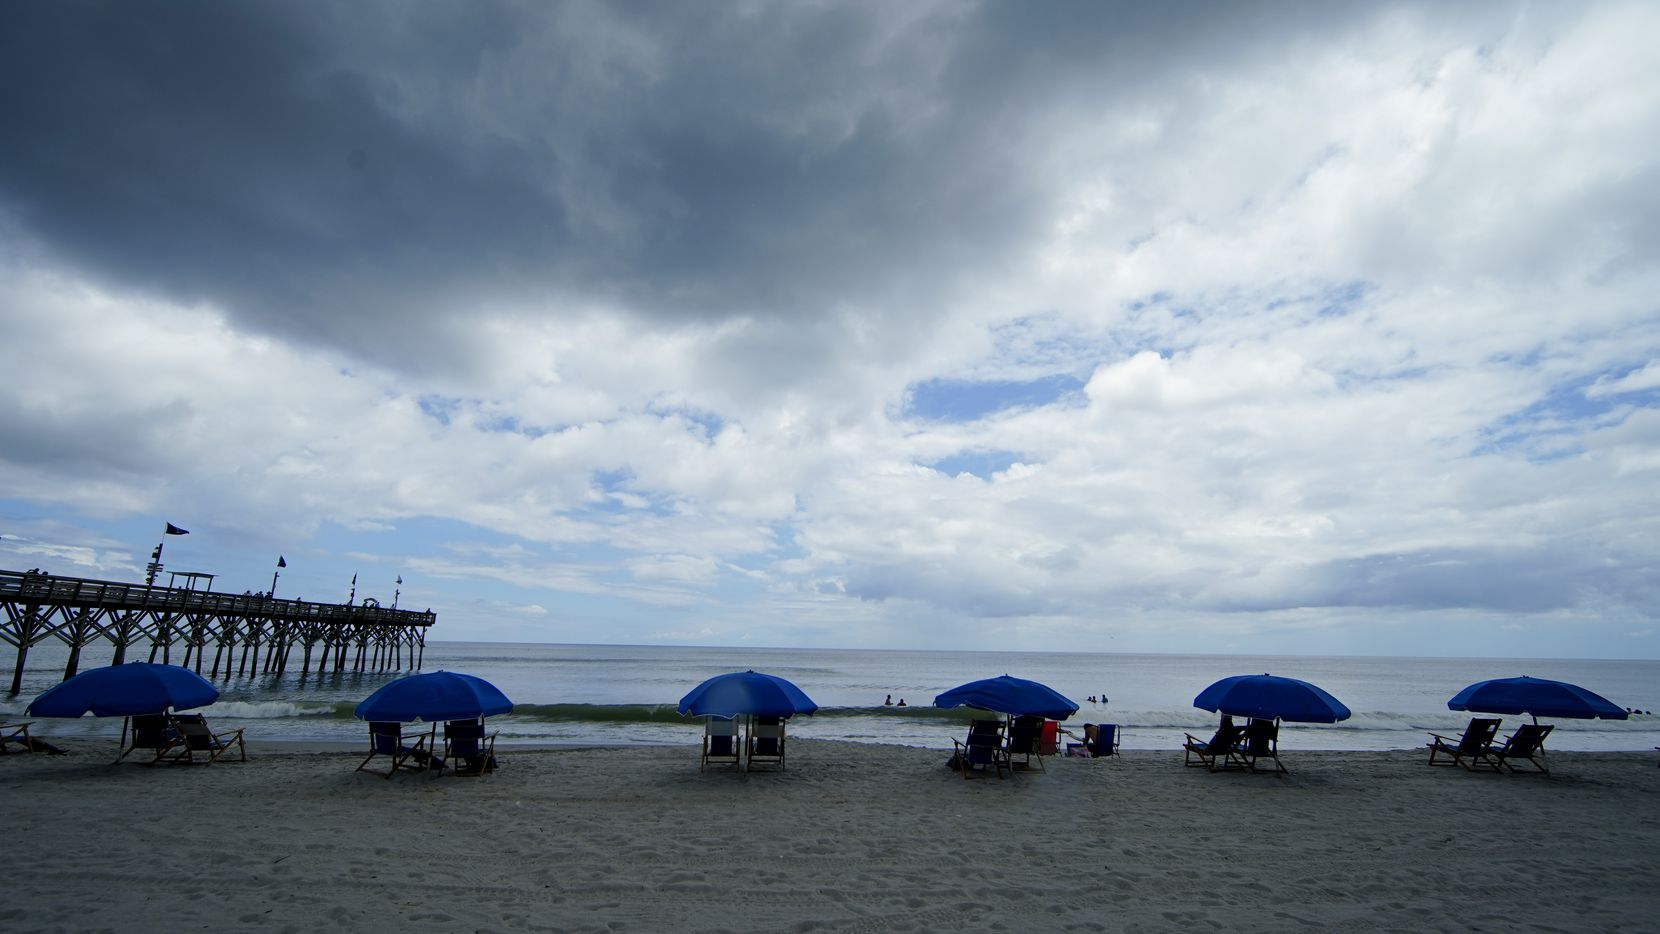 Beach umbrellas are separated on the sand Thursday, July 9, 2020, in Myrtle Beach, S.C. (AP Photo/Chris Carlson)